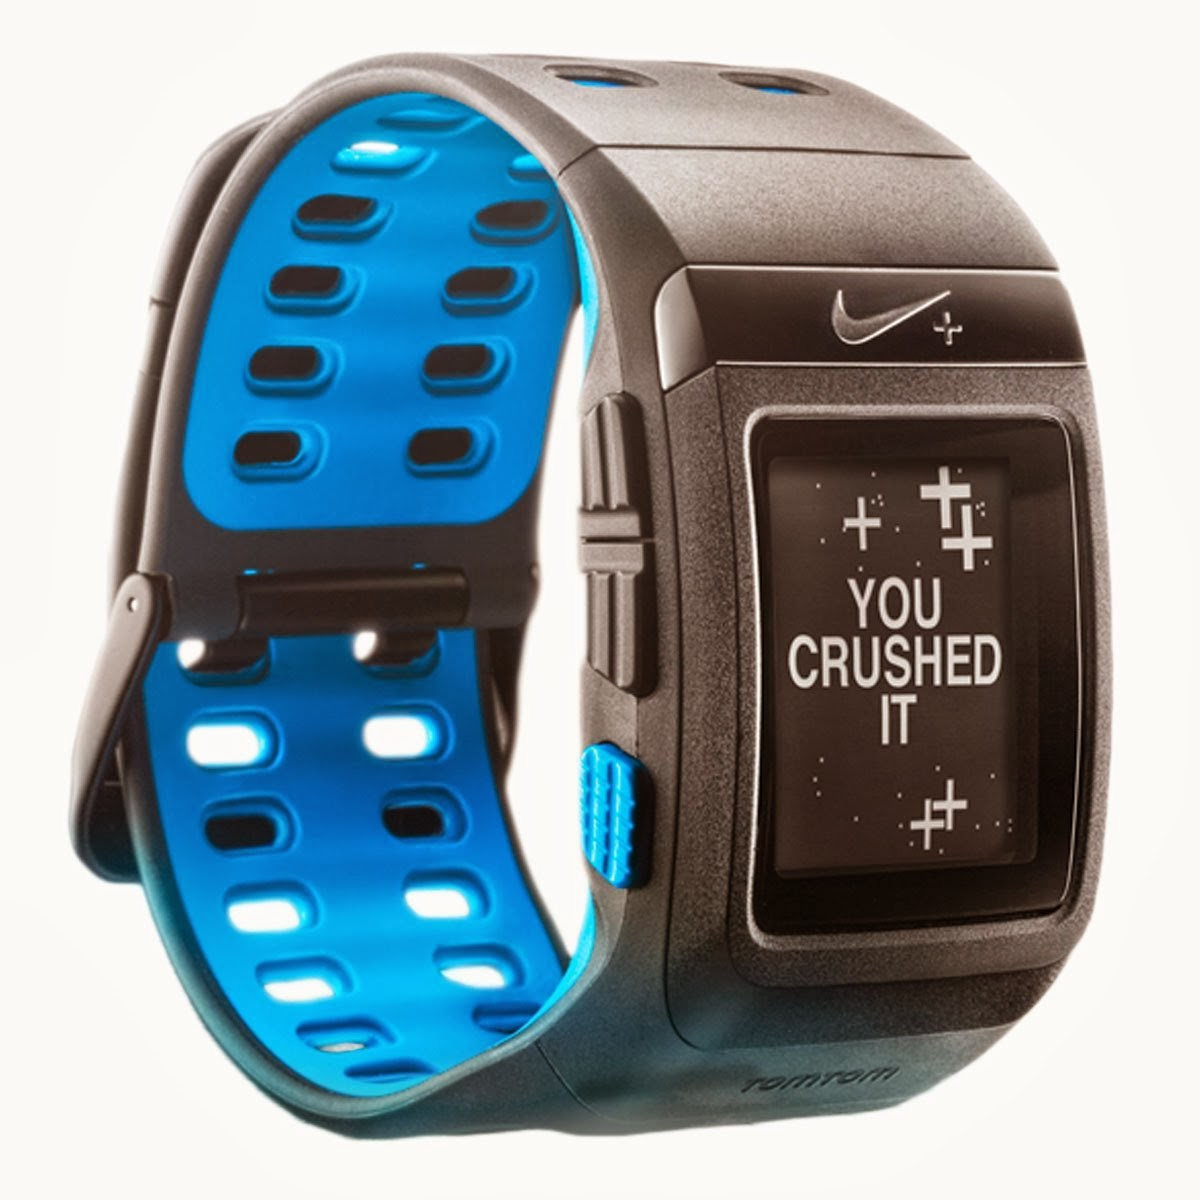 Nike+ SportWatch GPS Powered by TomTom, anthracite blue color